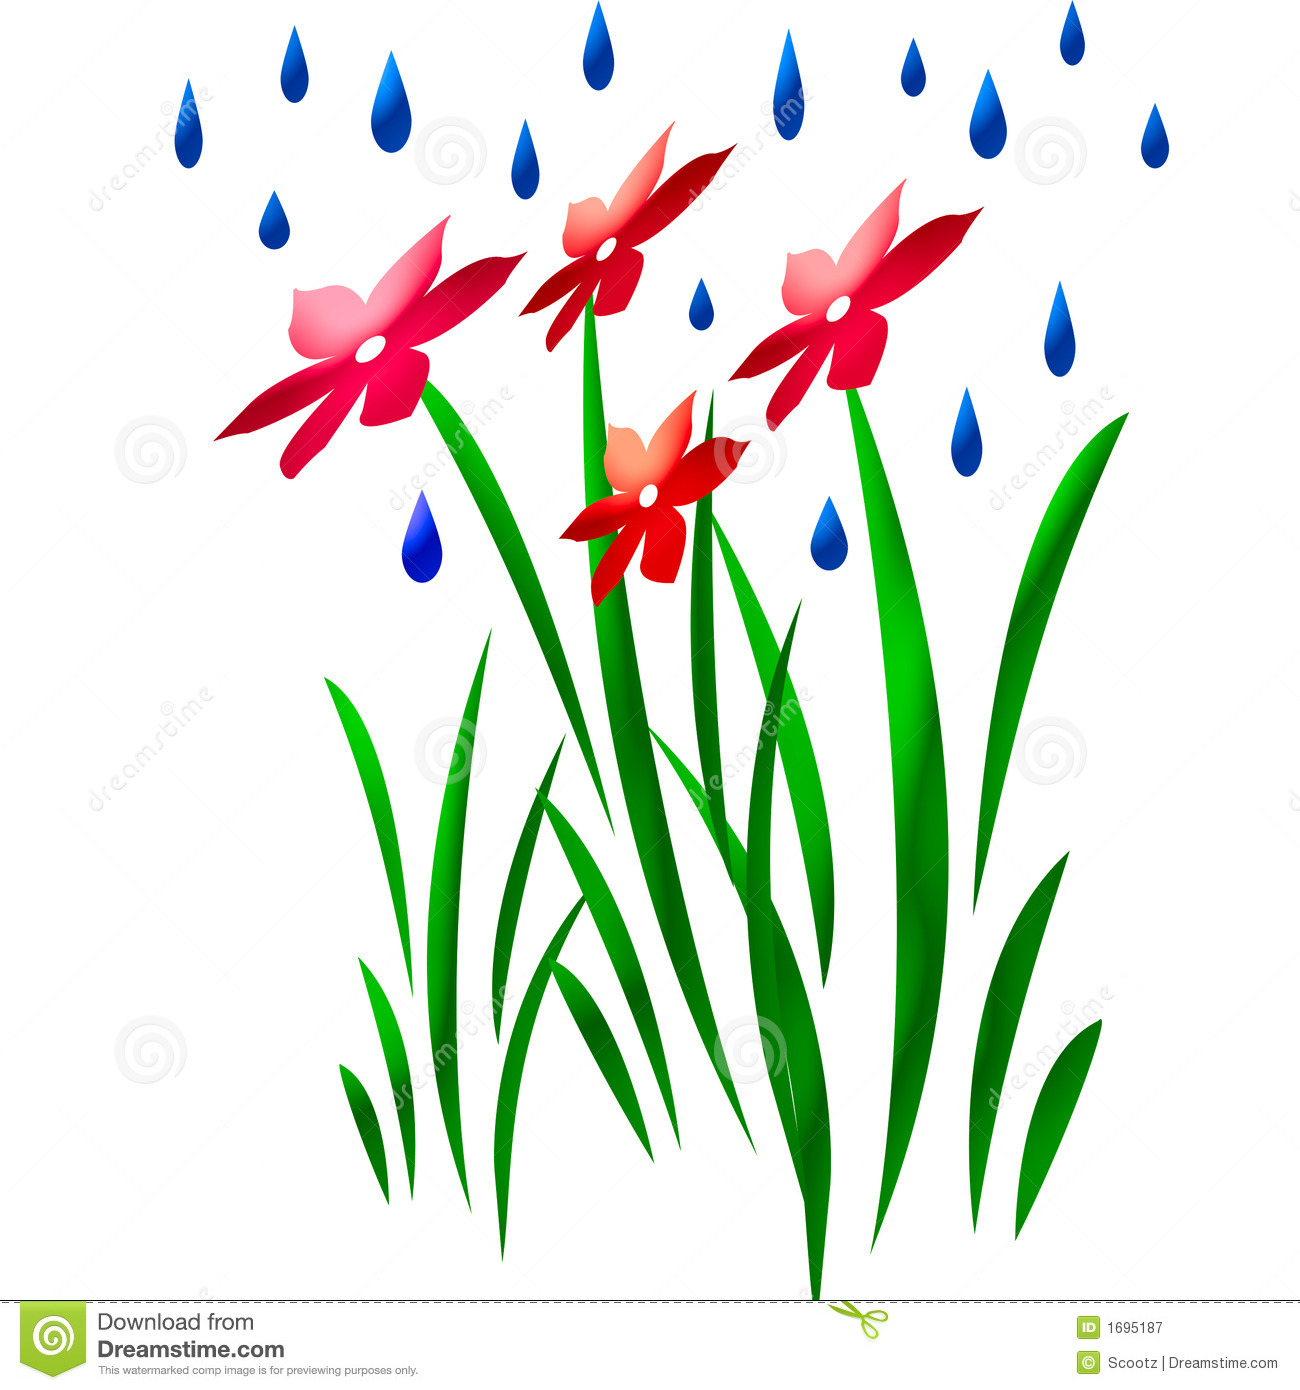 clipart spring showers - photo #42